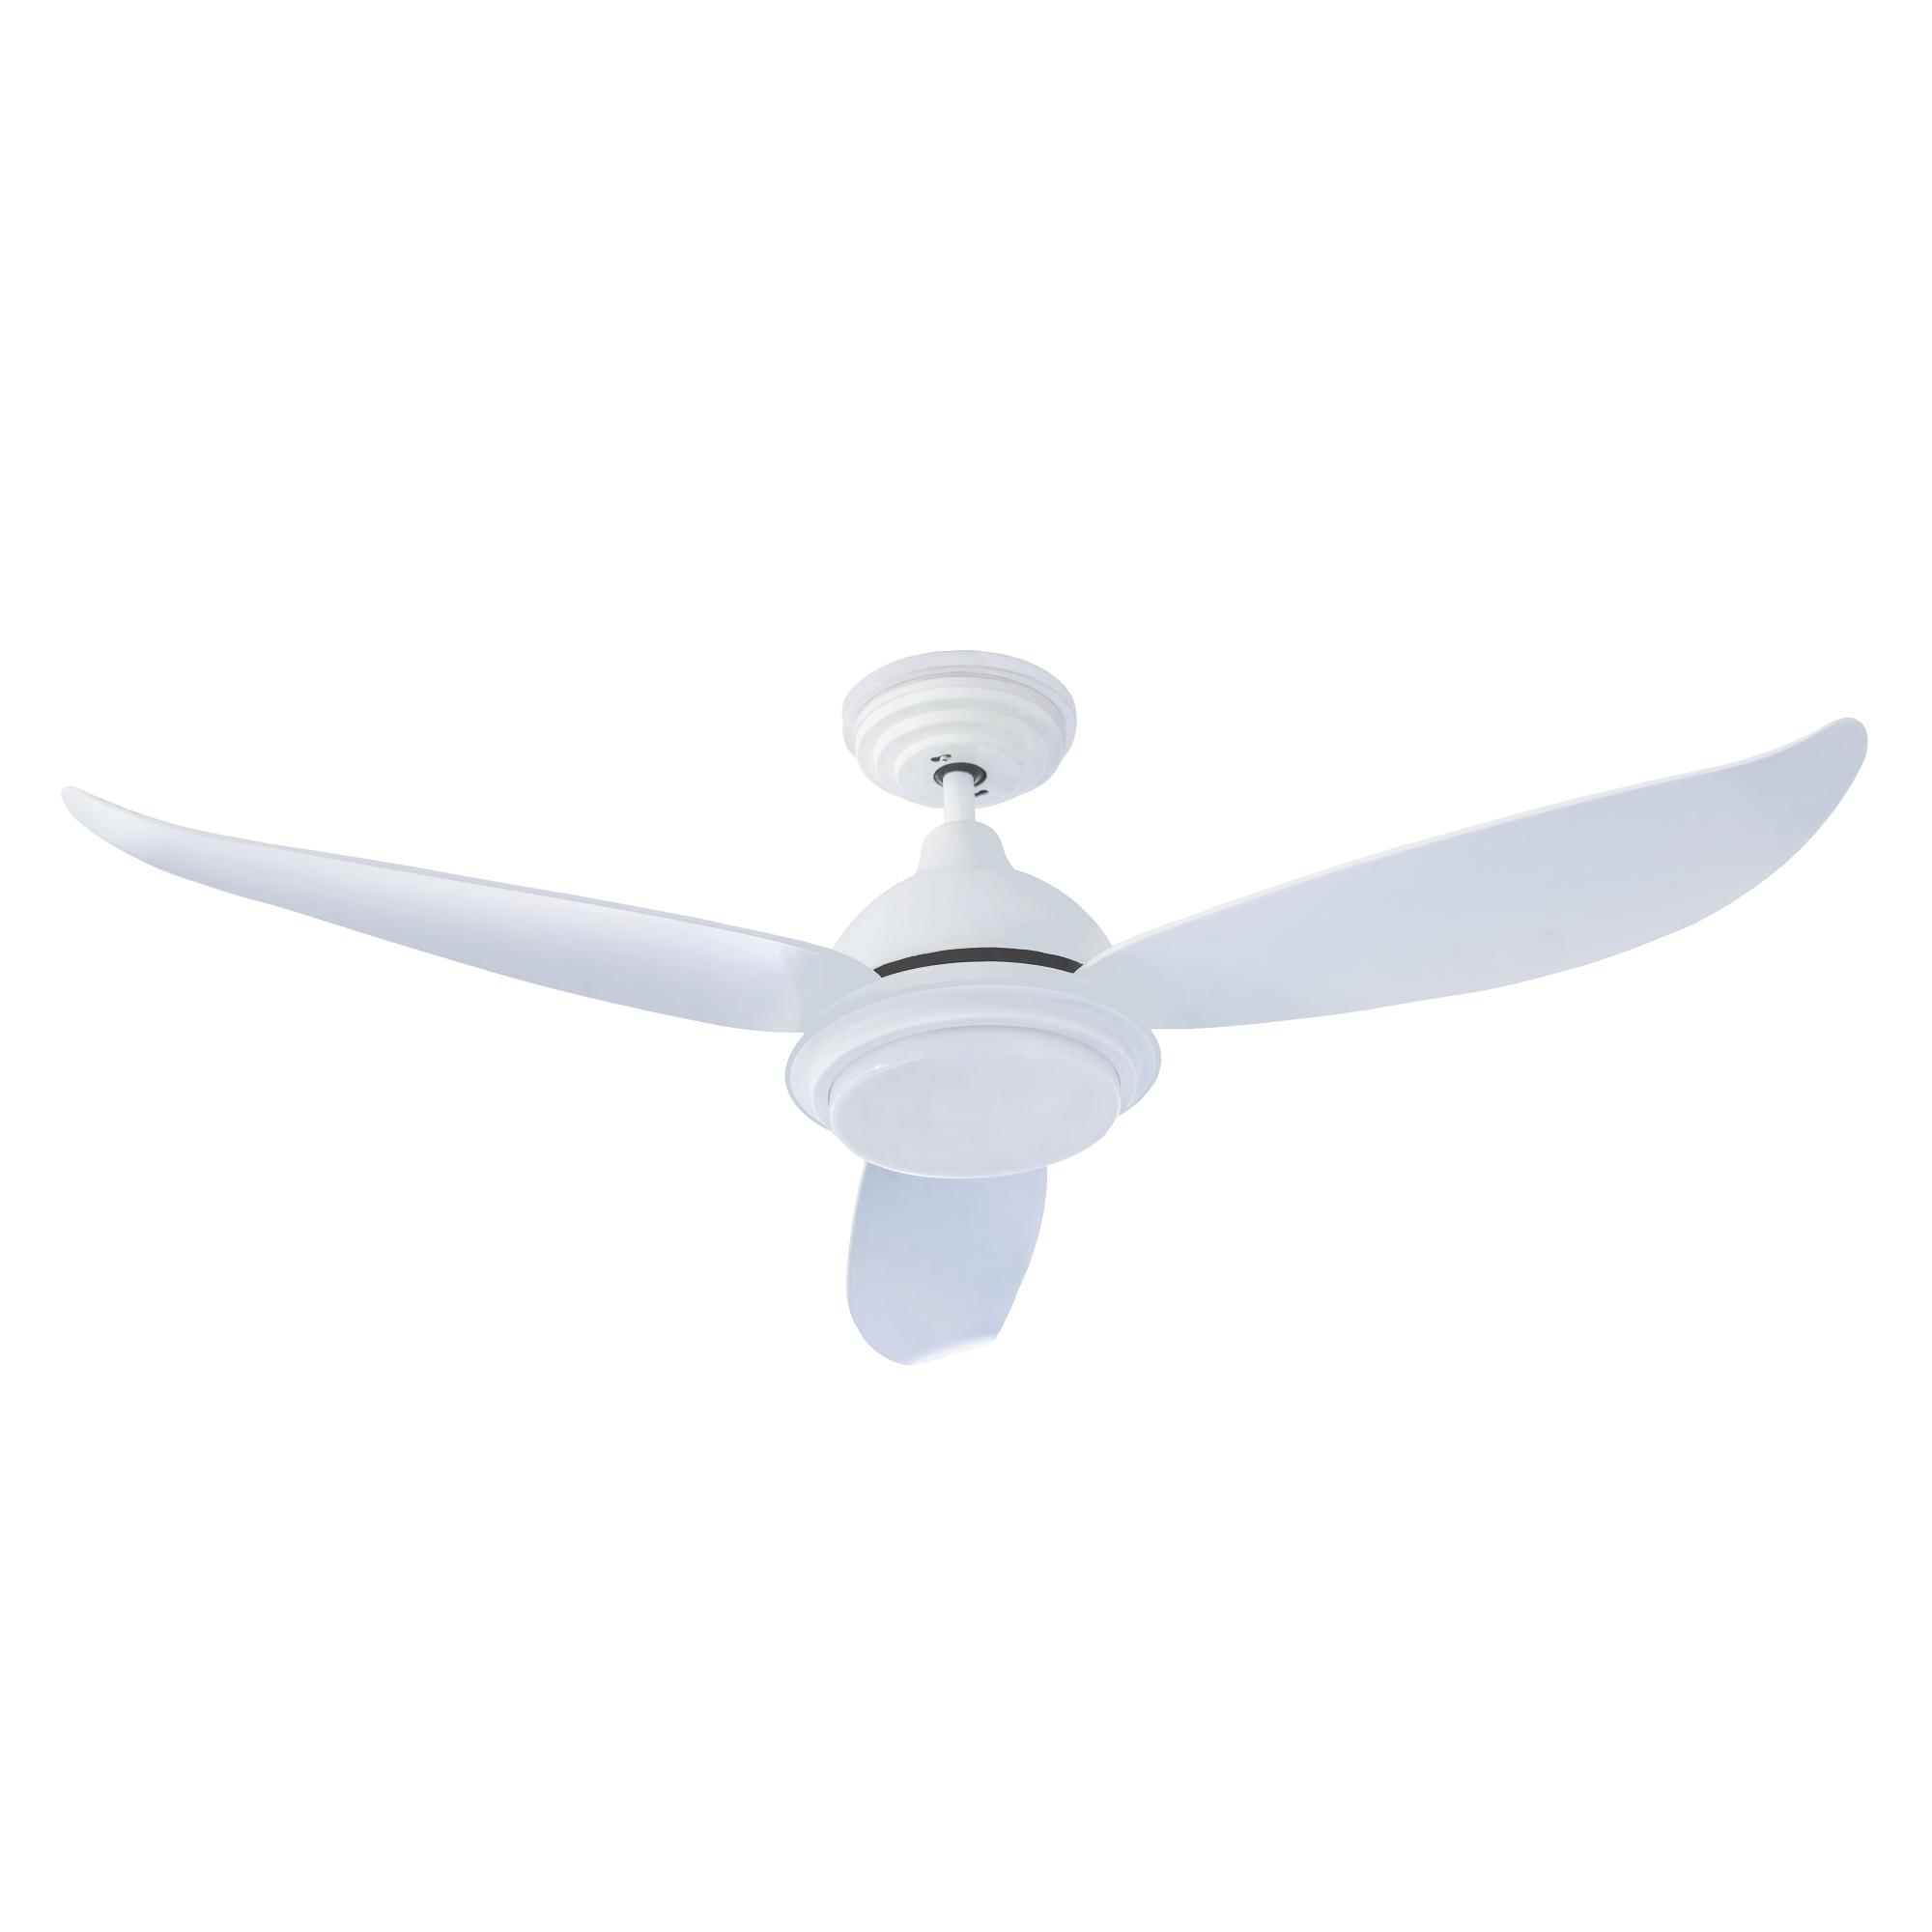 product inch australia buy air lighting ceiling brilliant online best fans movement in ceilings